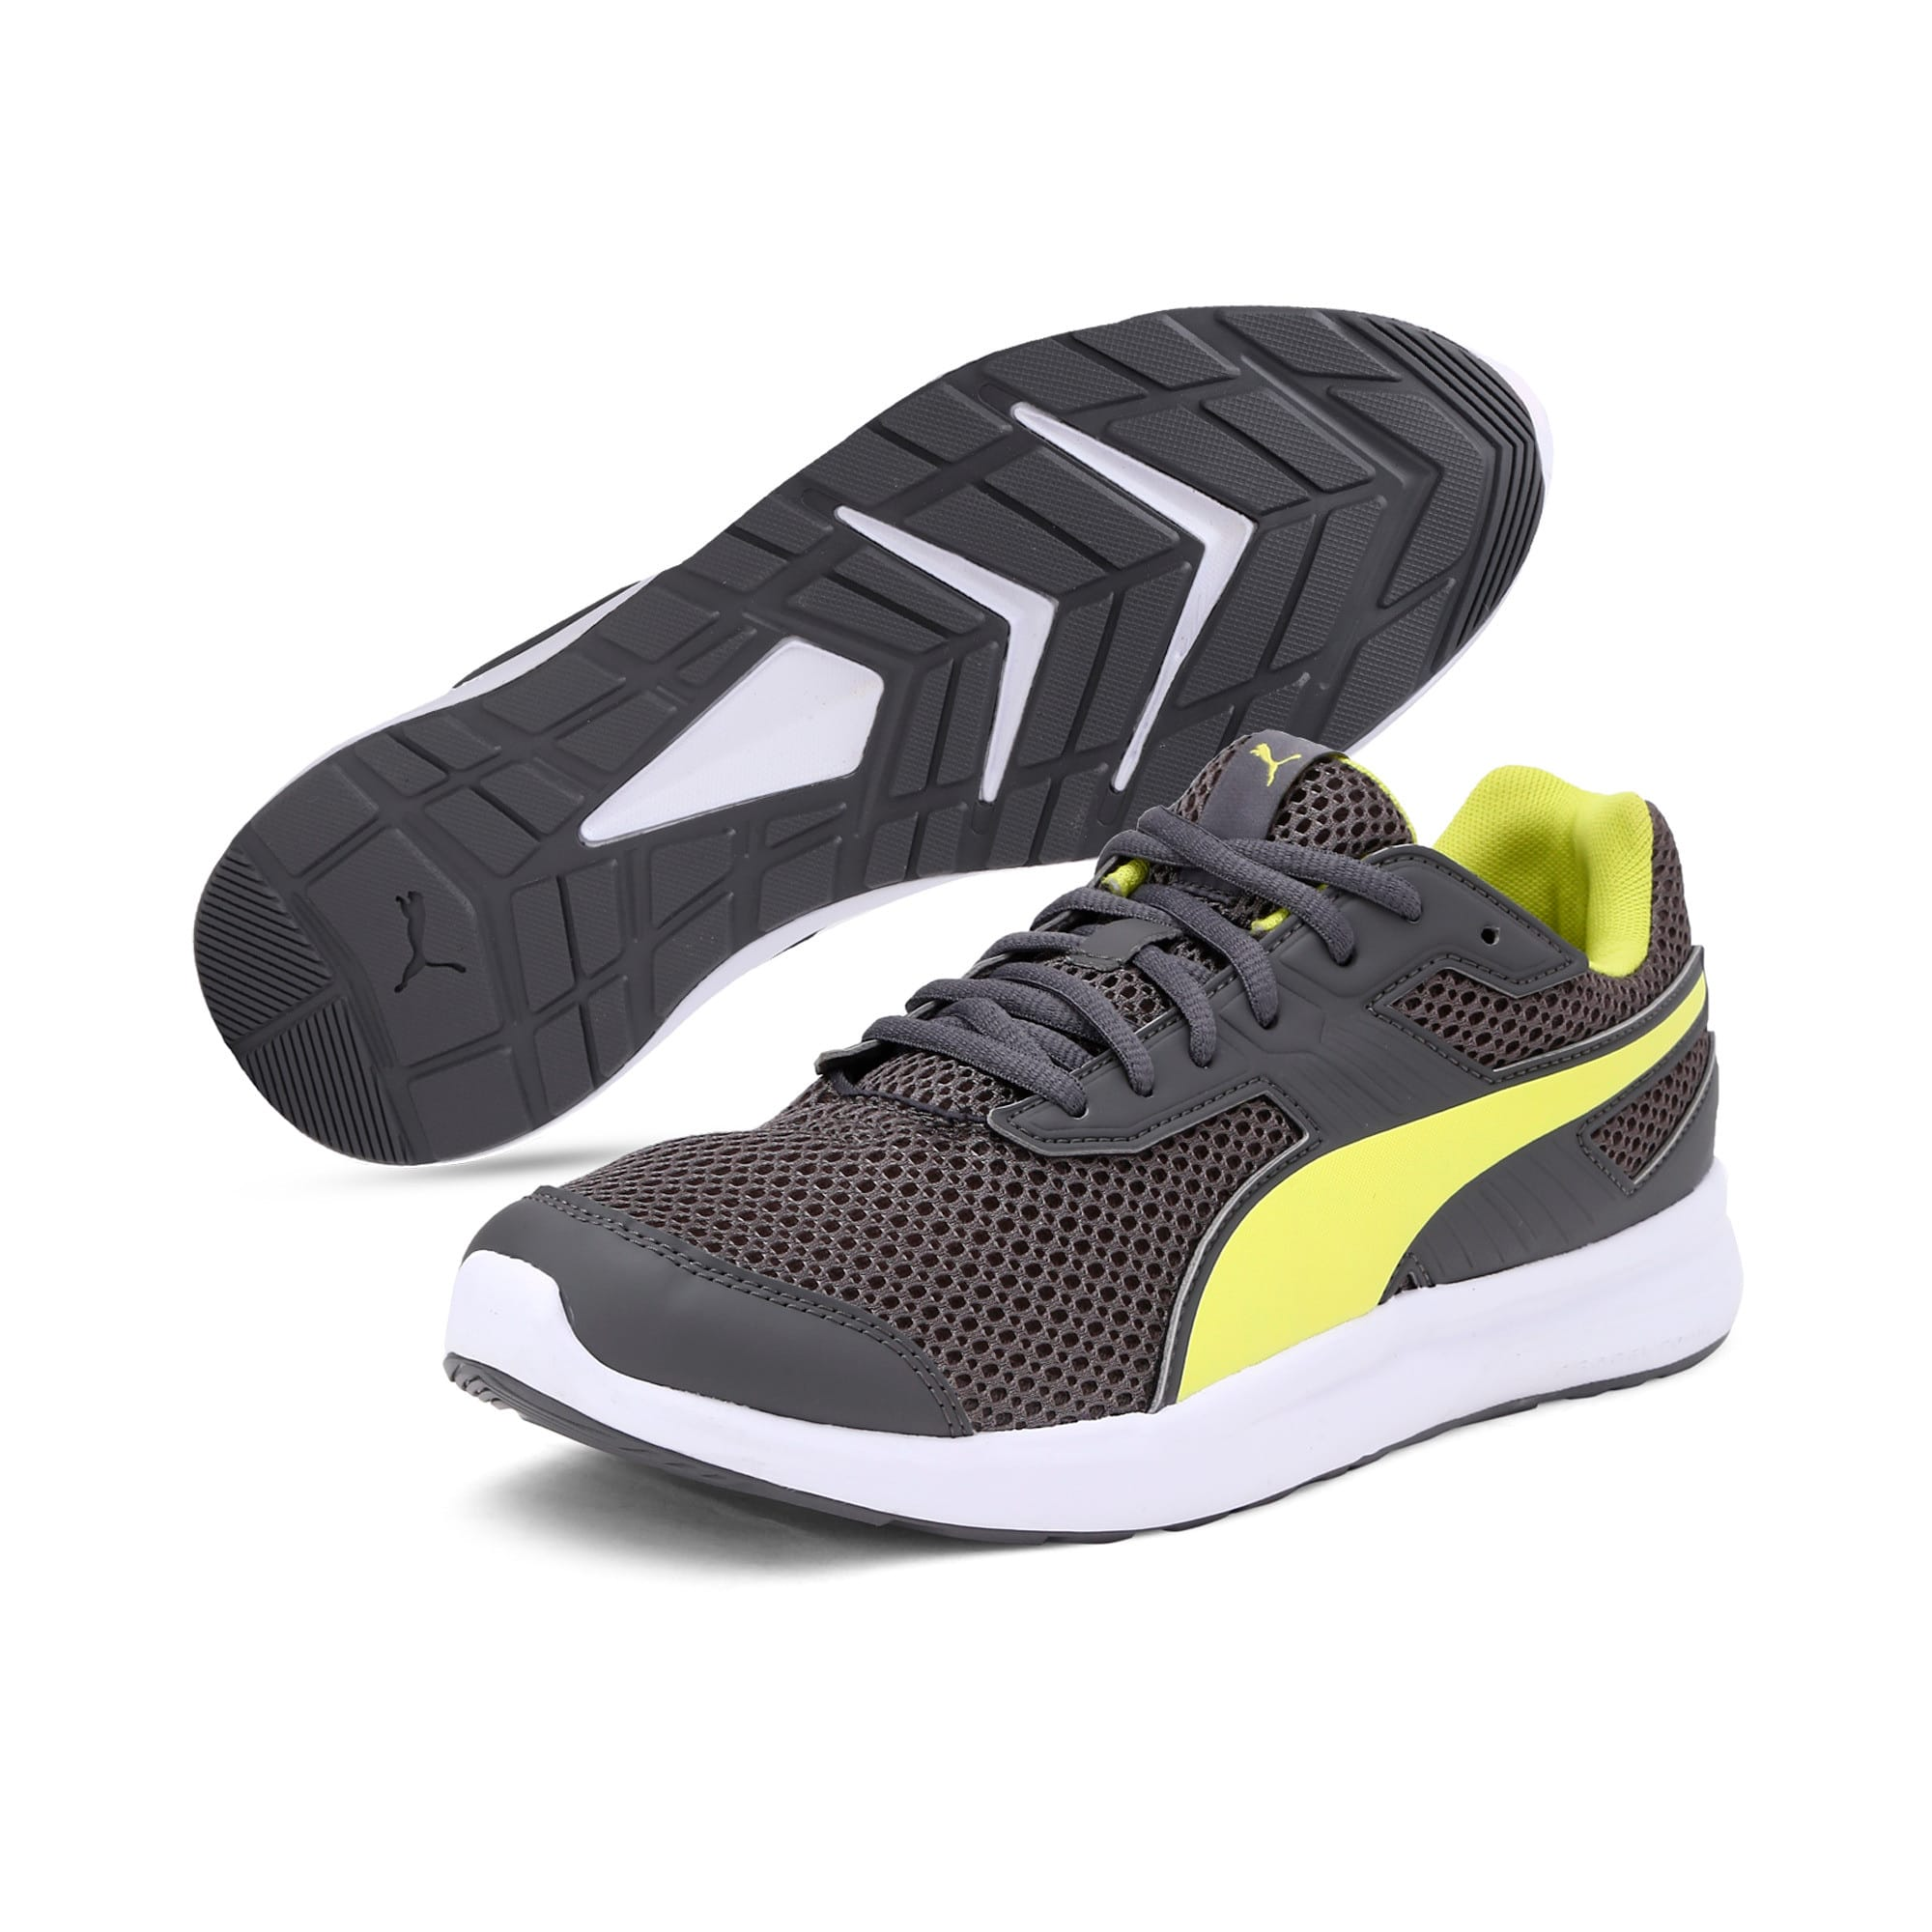 Thumbnail 2 of Escaper Training Shoes, CASTLEROCK-Nrgy Yellow-White, medium-IND